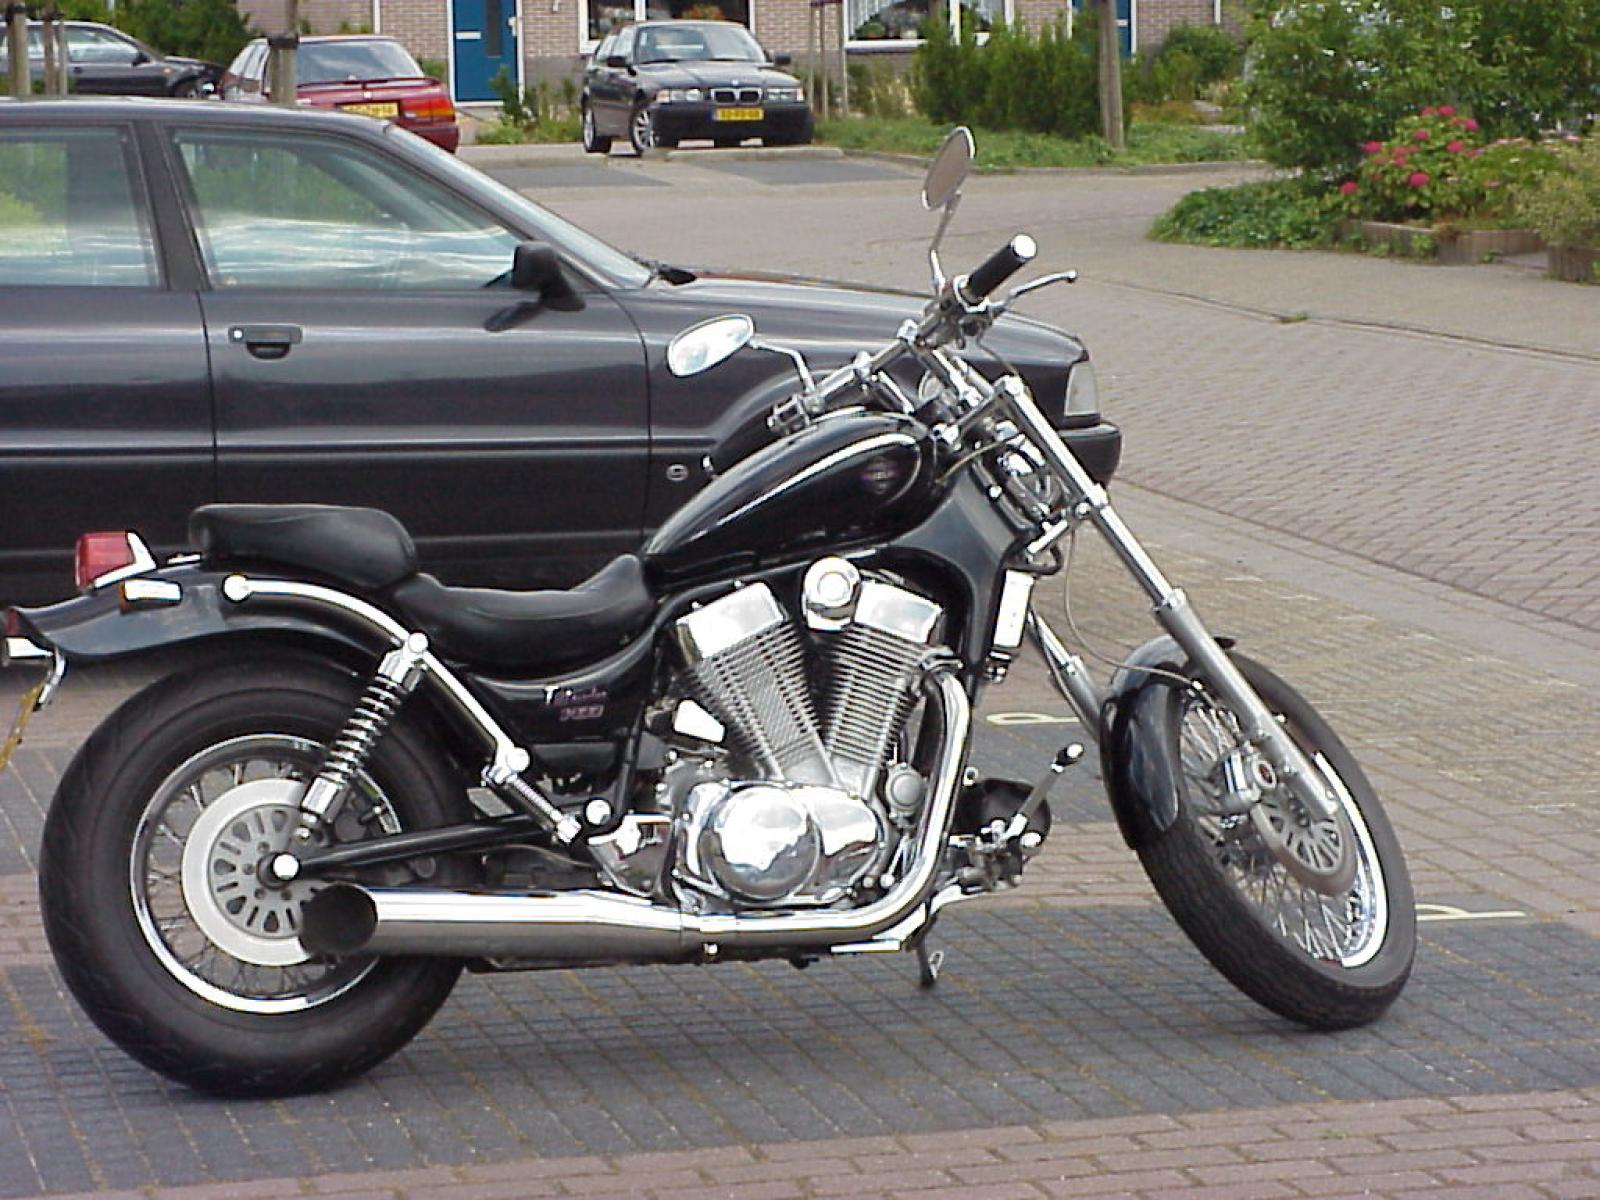 1998 suzuki vs 1400 glp intruder moto zombdrive com. Black Bedroom Furniture Sets. Home Design Ideas